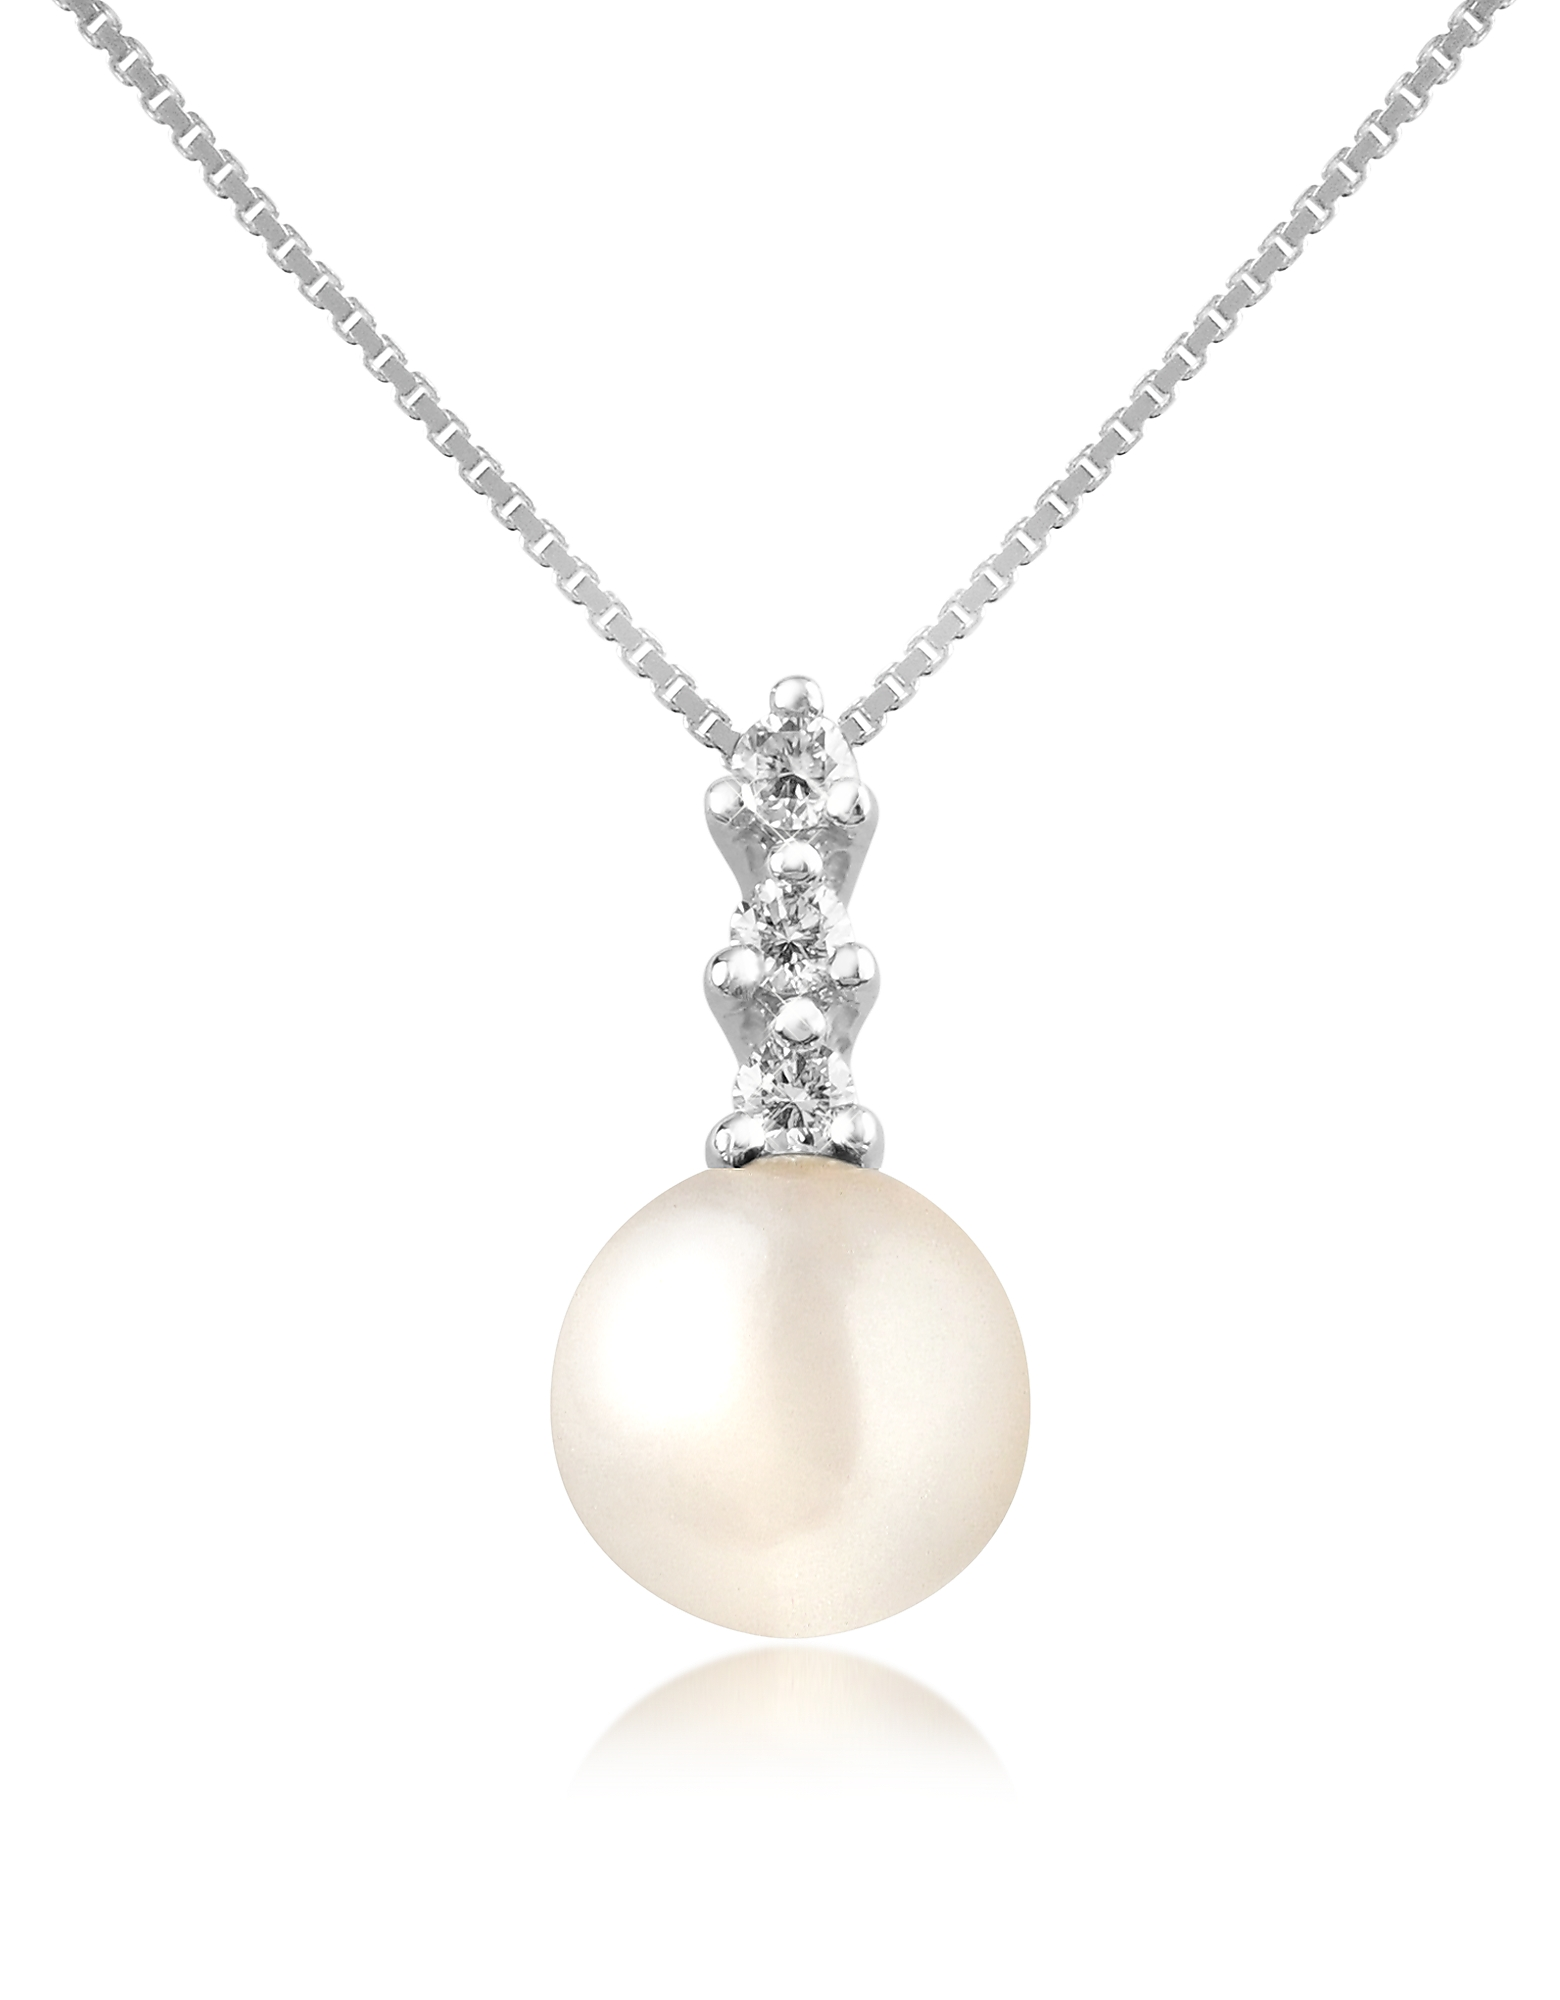 Forzieri Necklaces, Diamond and Pearl Pendant 18K Gold Necklace